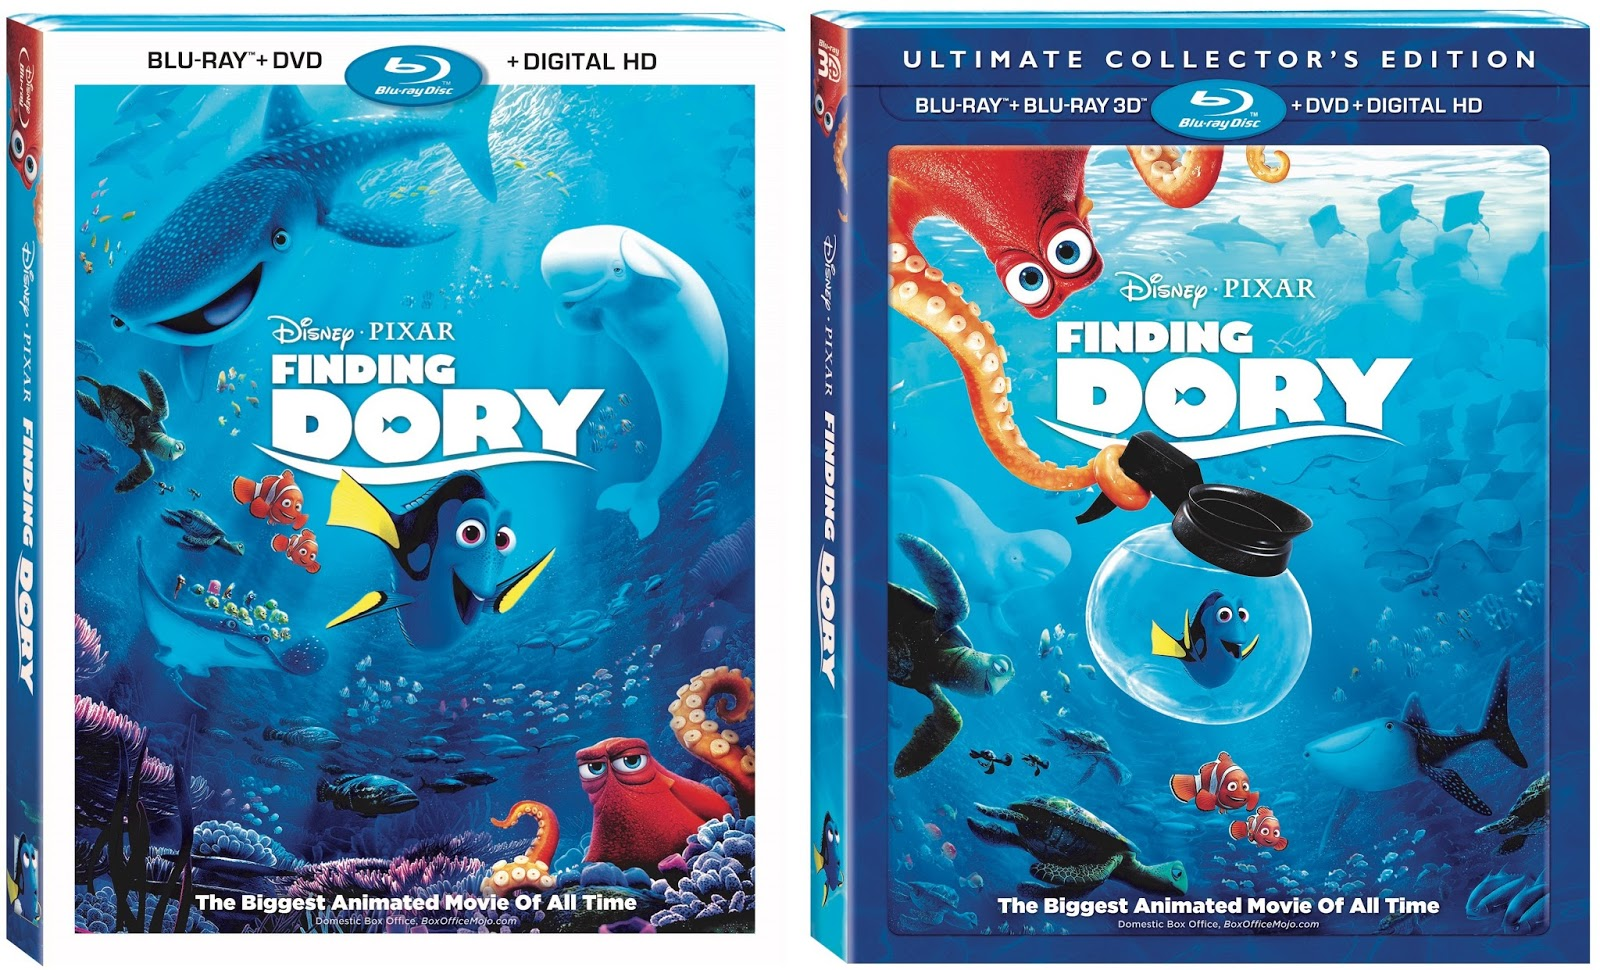 Finding Dory Blu Ray Nov 15 Digital HD Oct